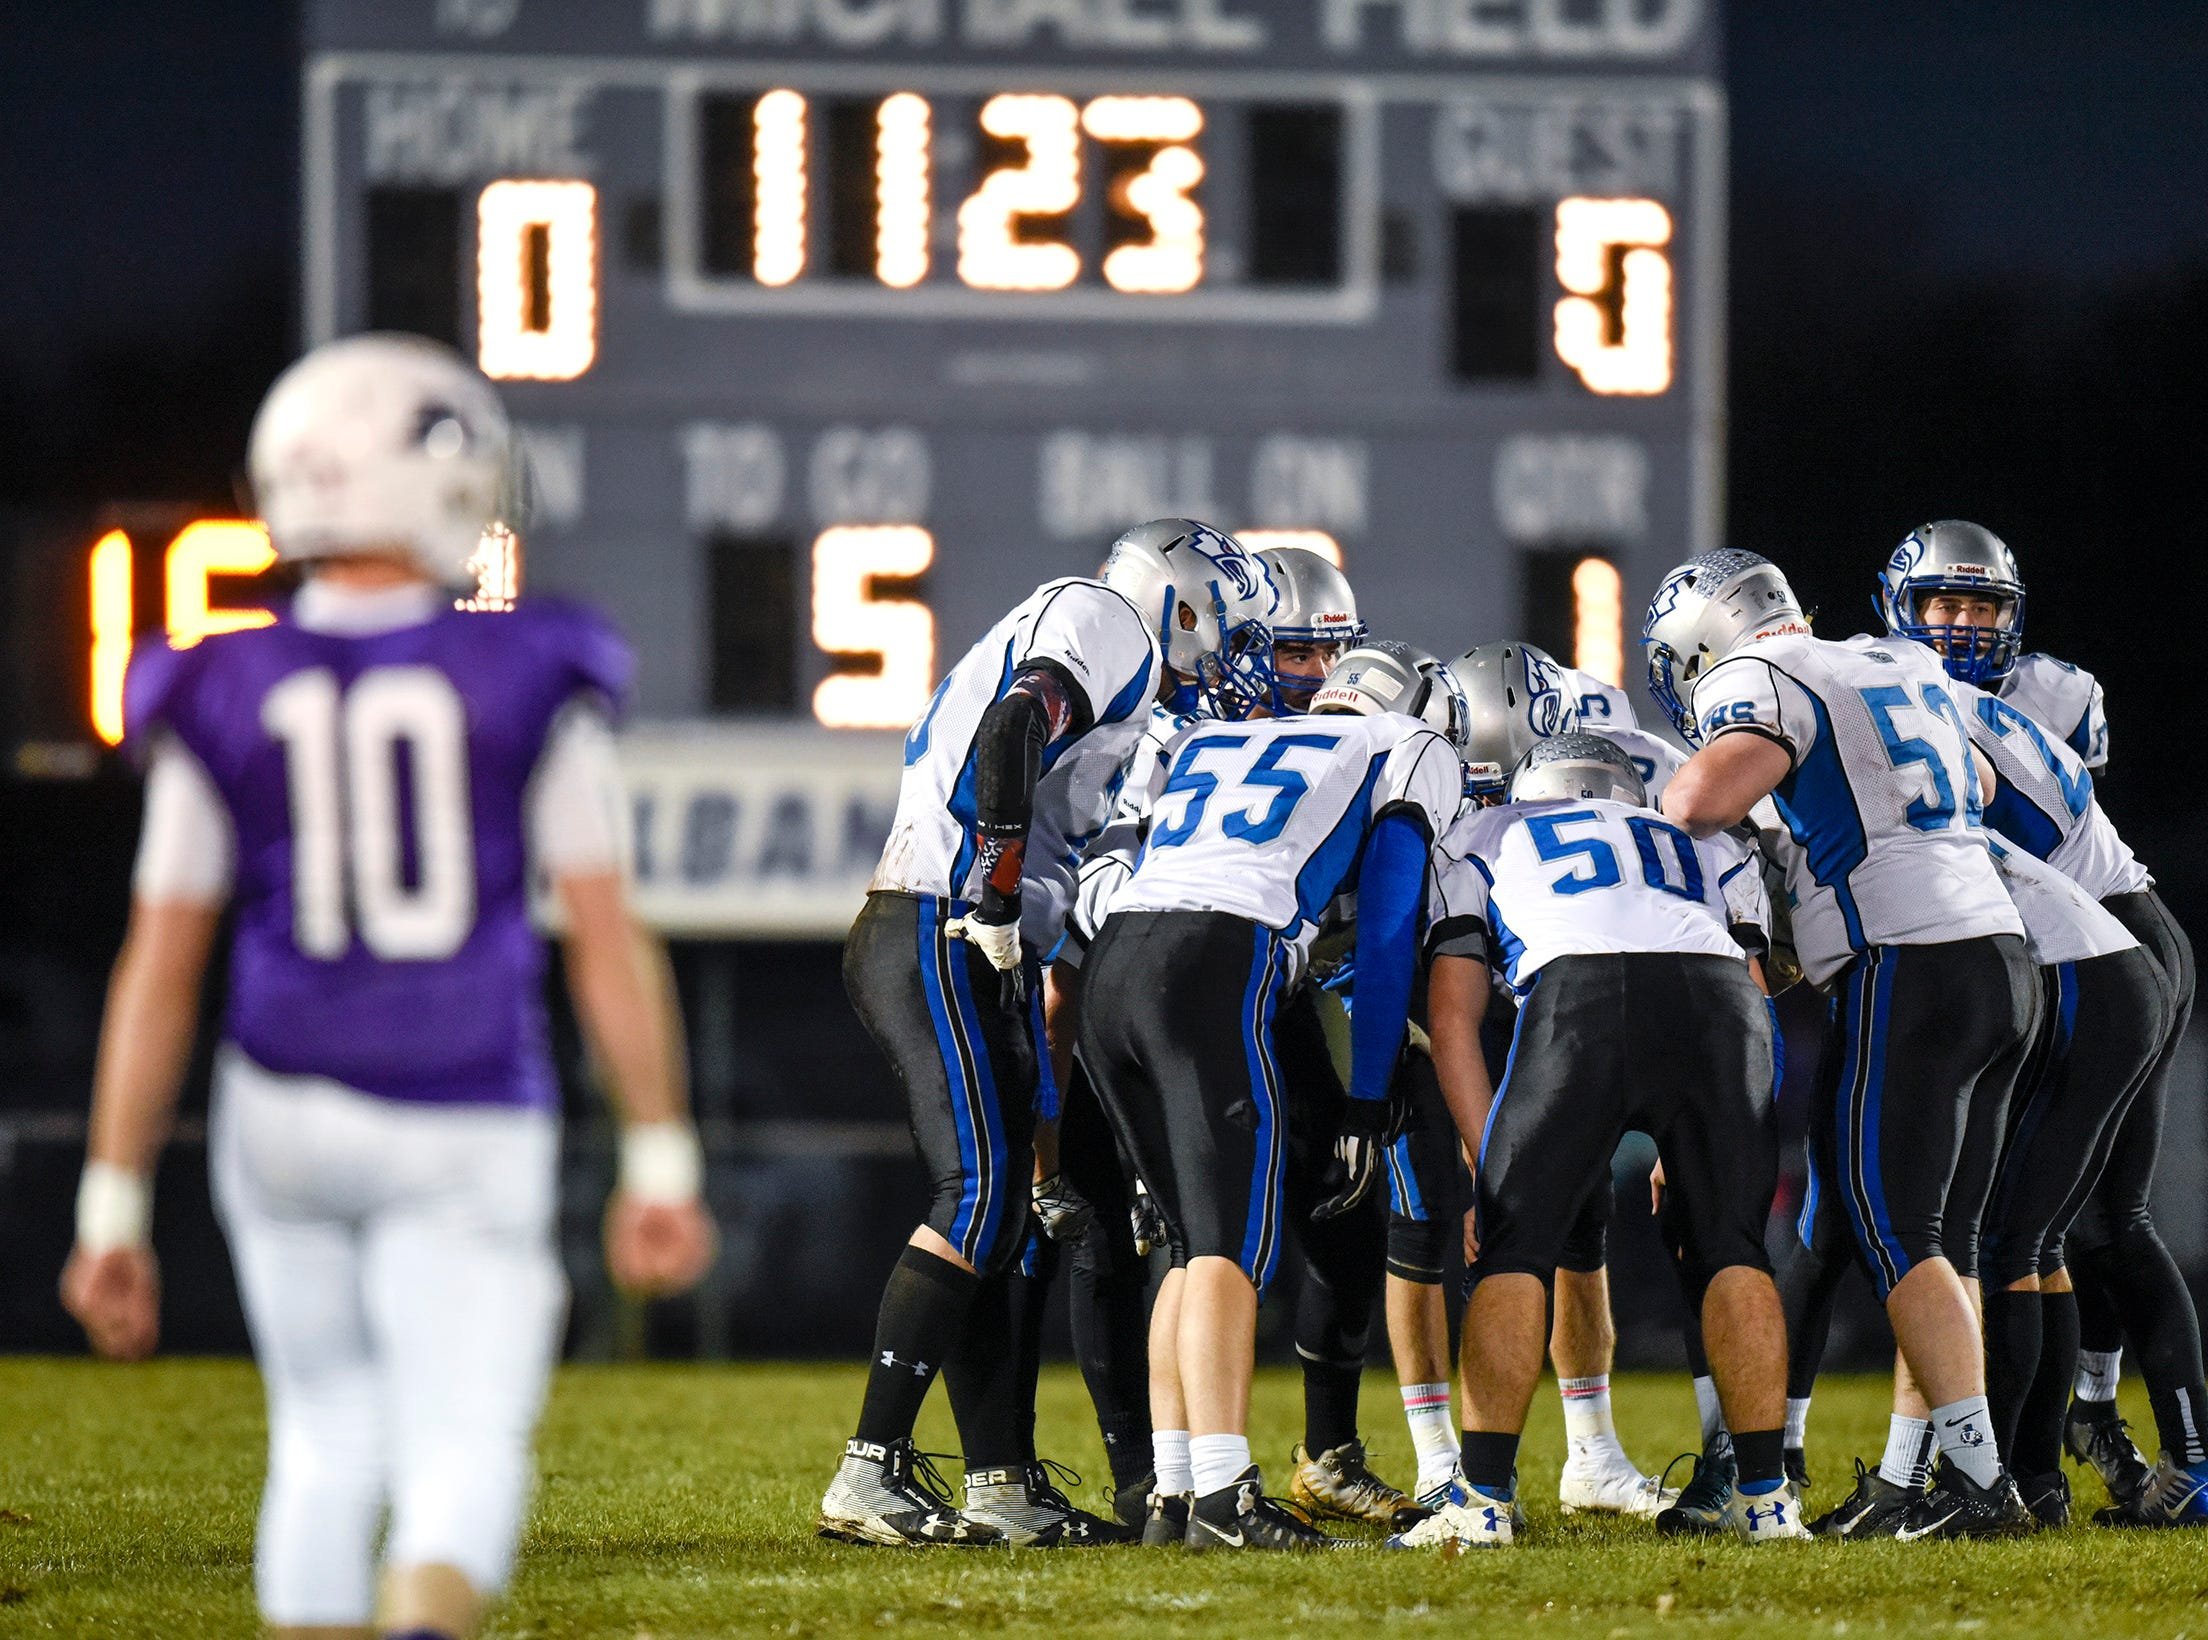 Foley players call the play in the huddle during the first half Friday, Oct. 12, in Albany.